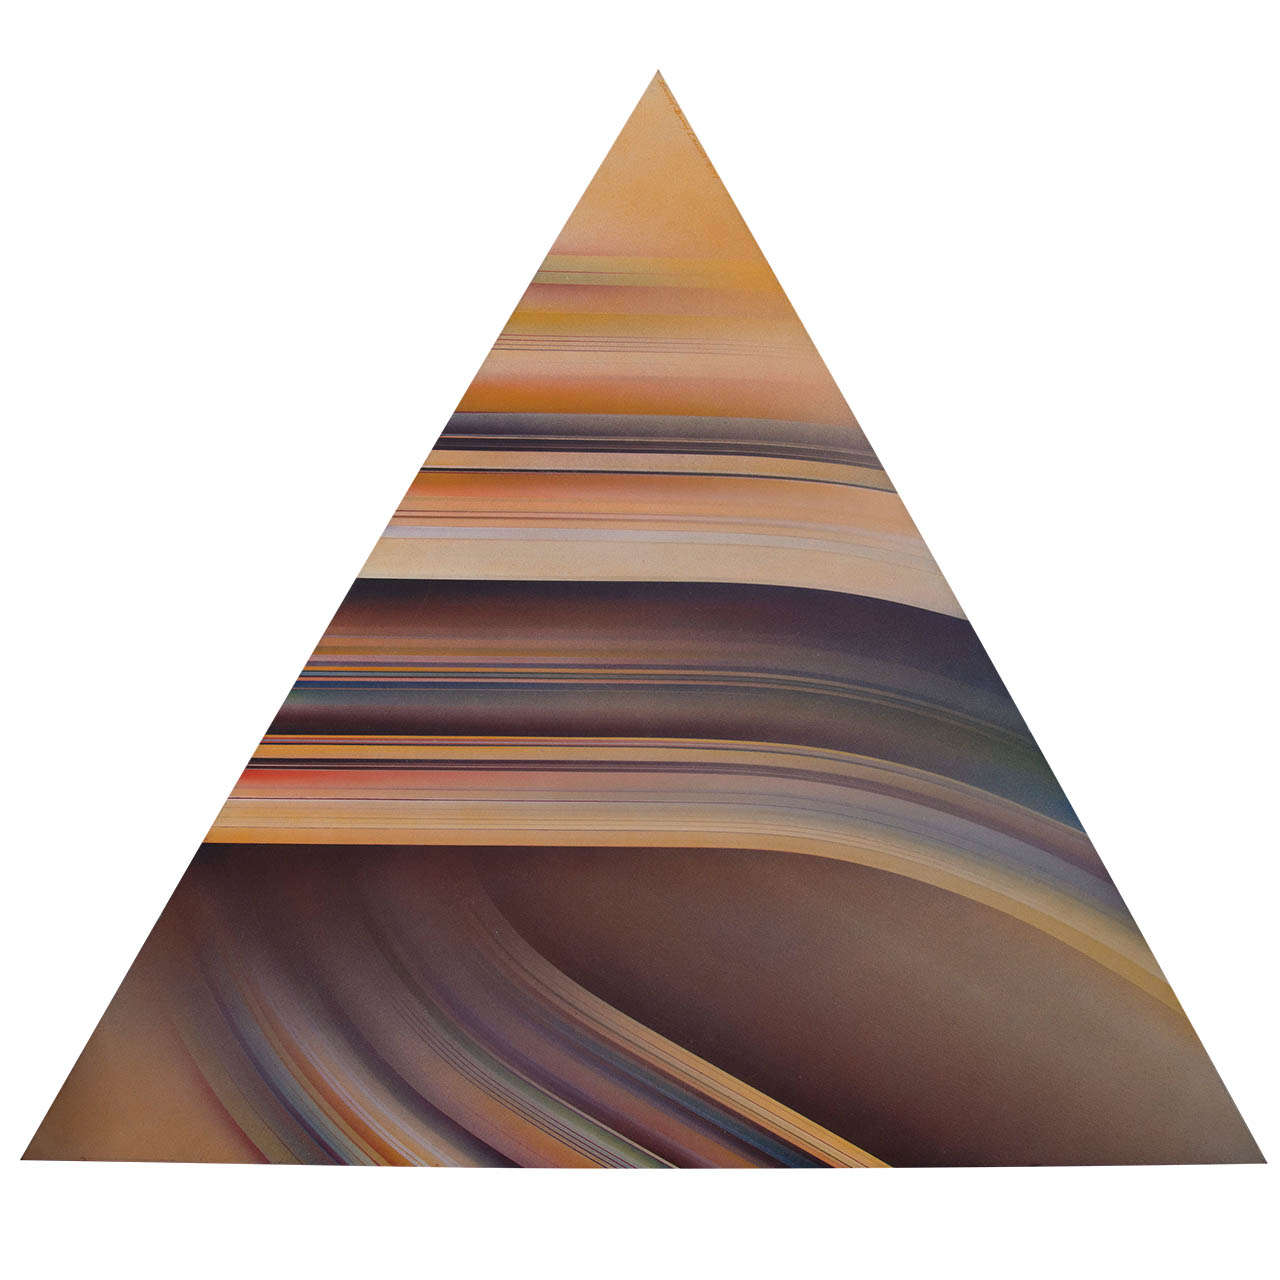 A Mid Century Triangular Painting by David Barry Lewis